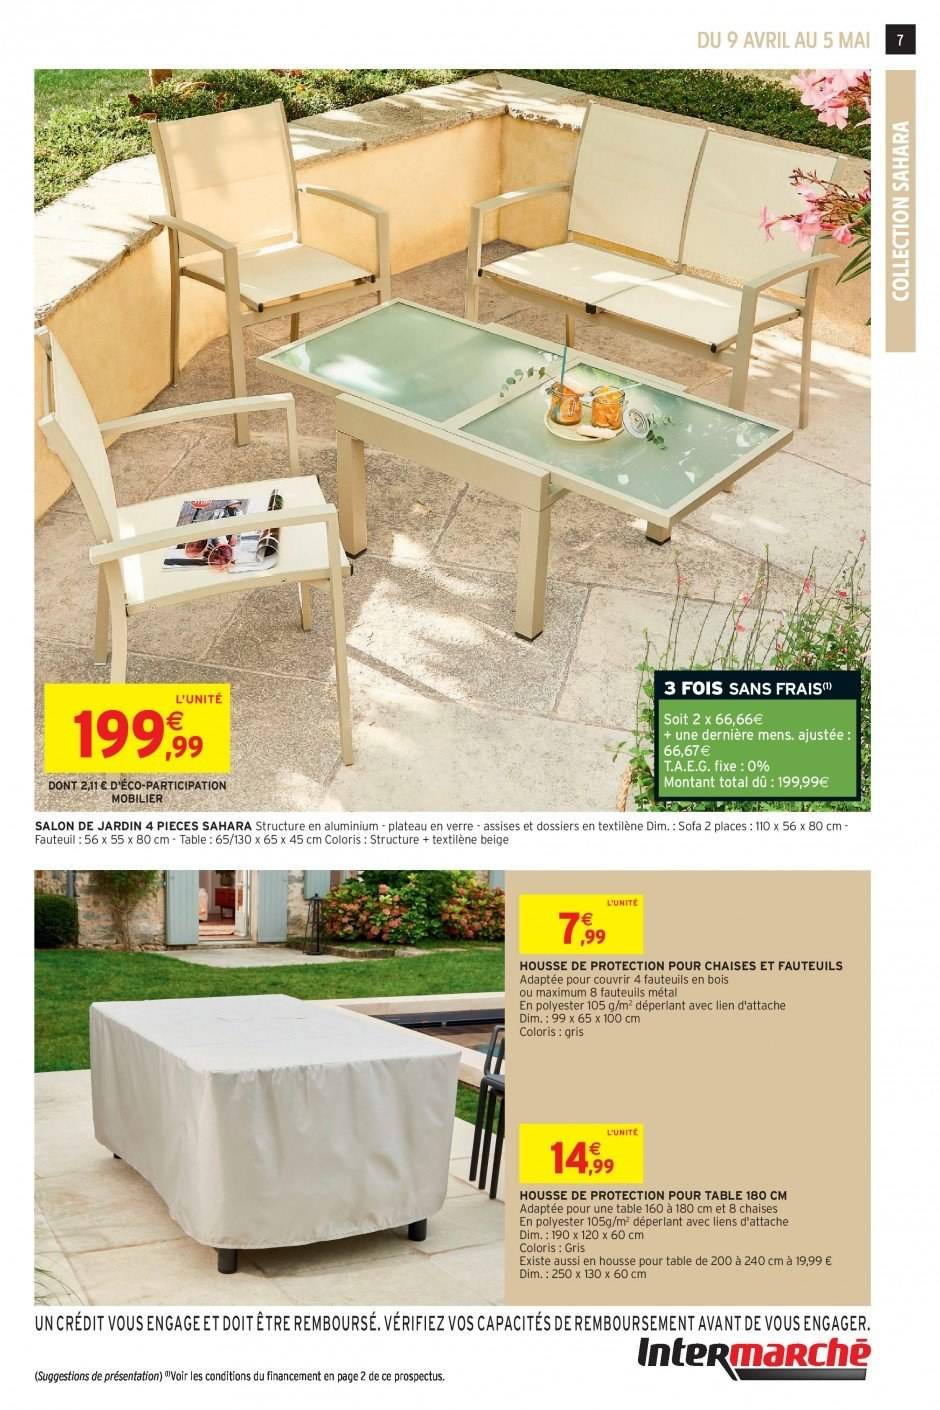 Catalogue Intermarche 09 04 2019 05 05 2019 Page 7 Vos Promos